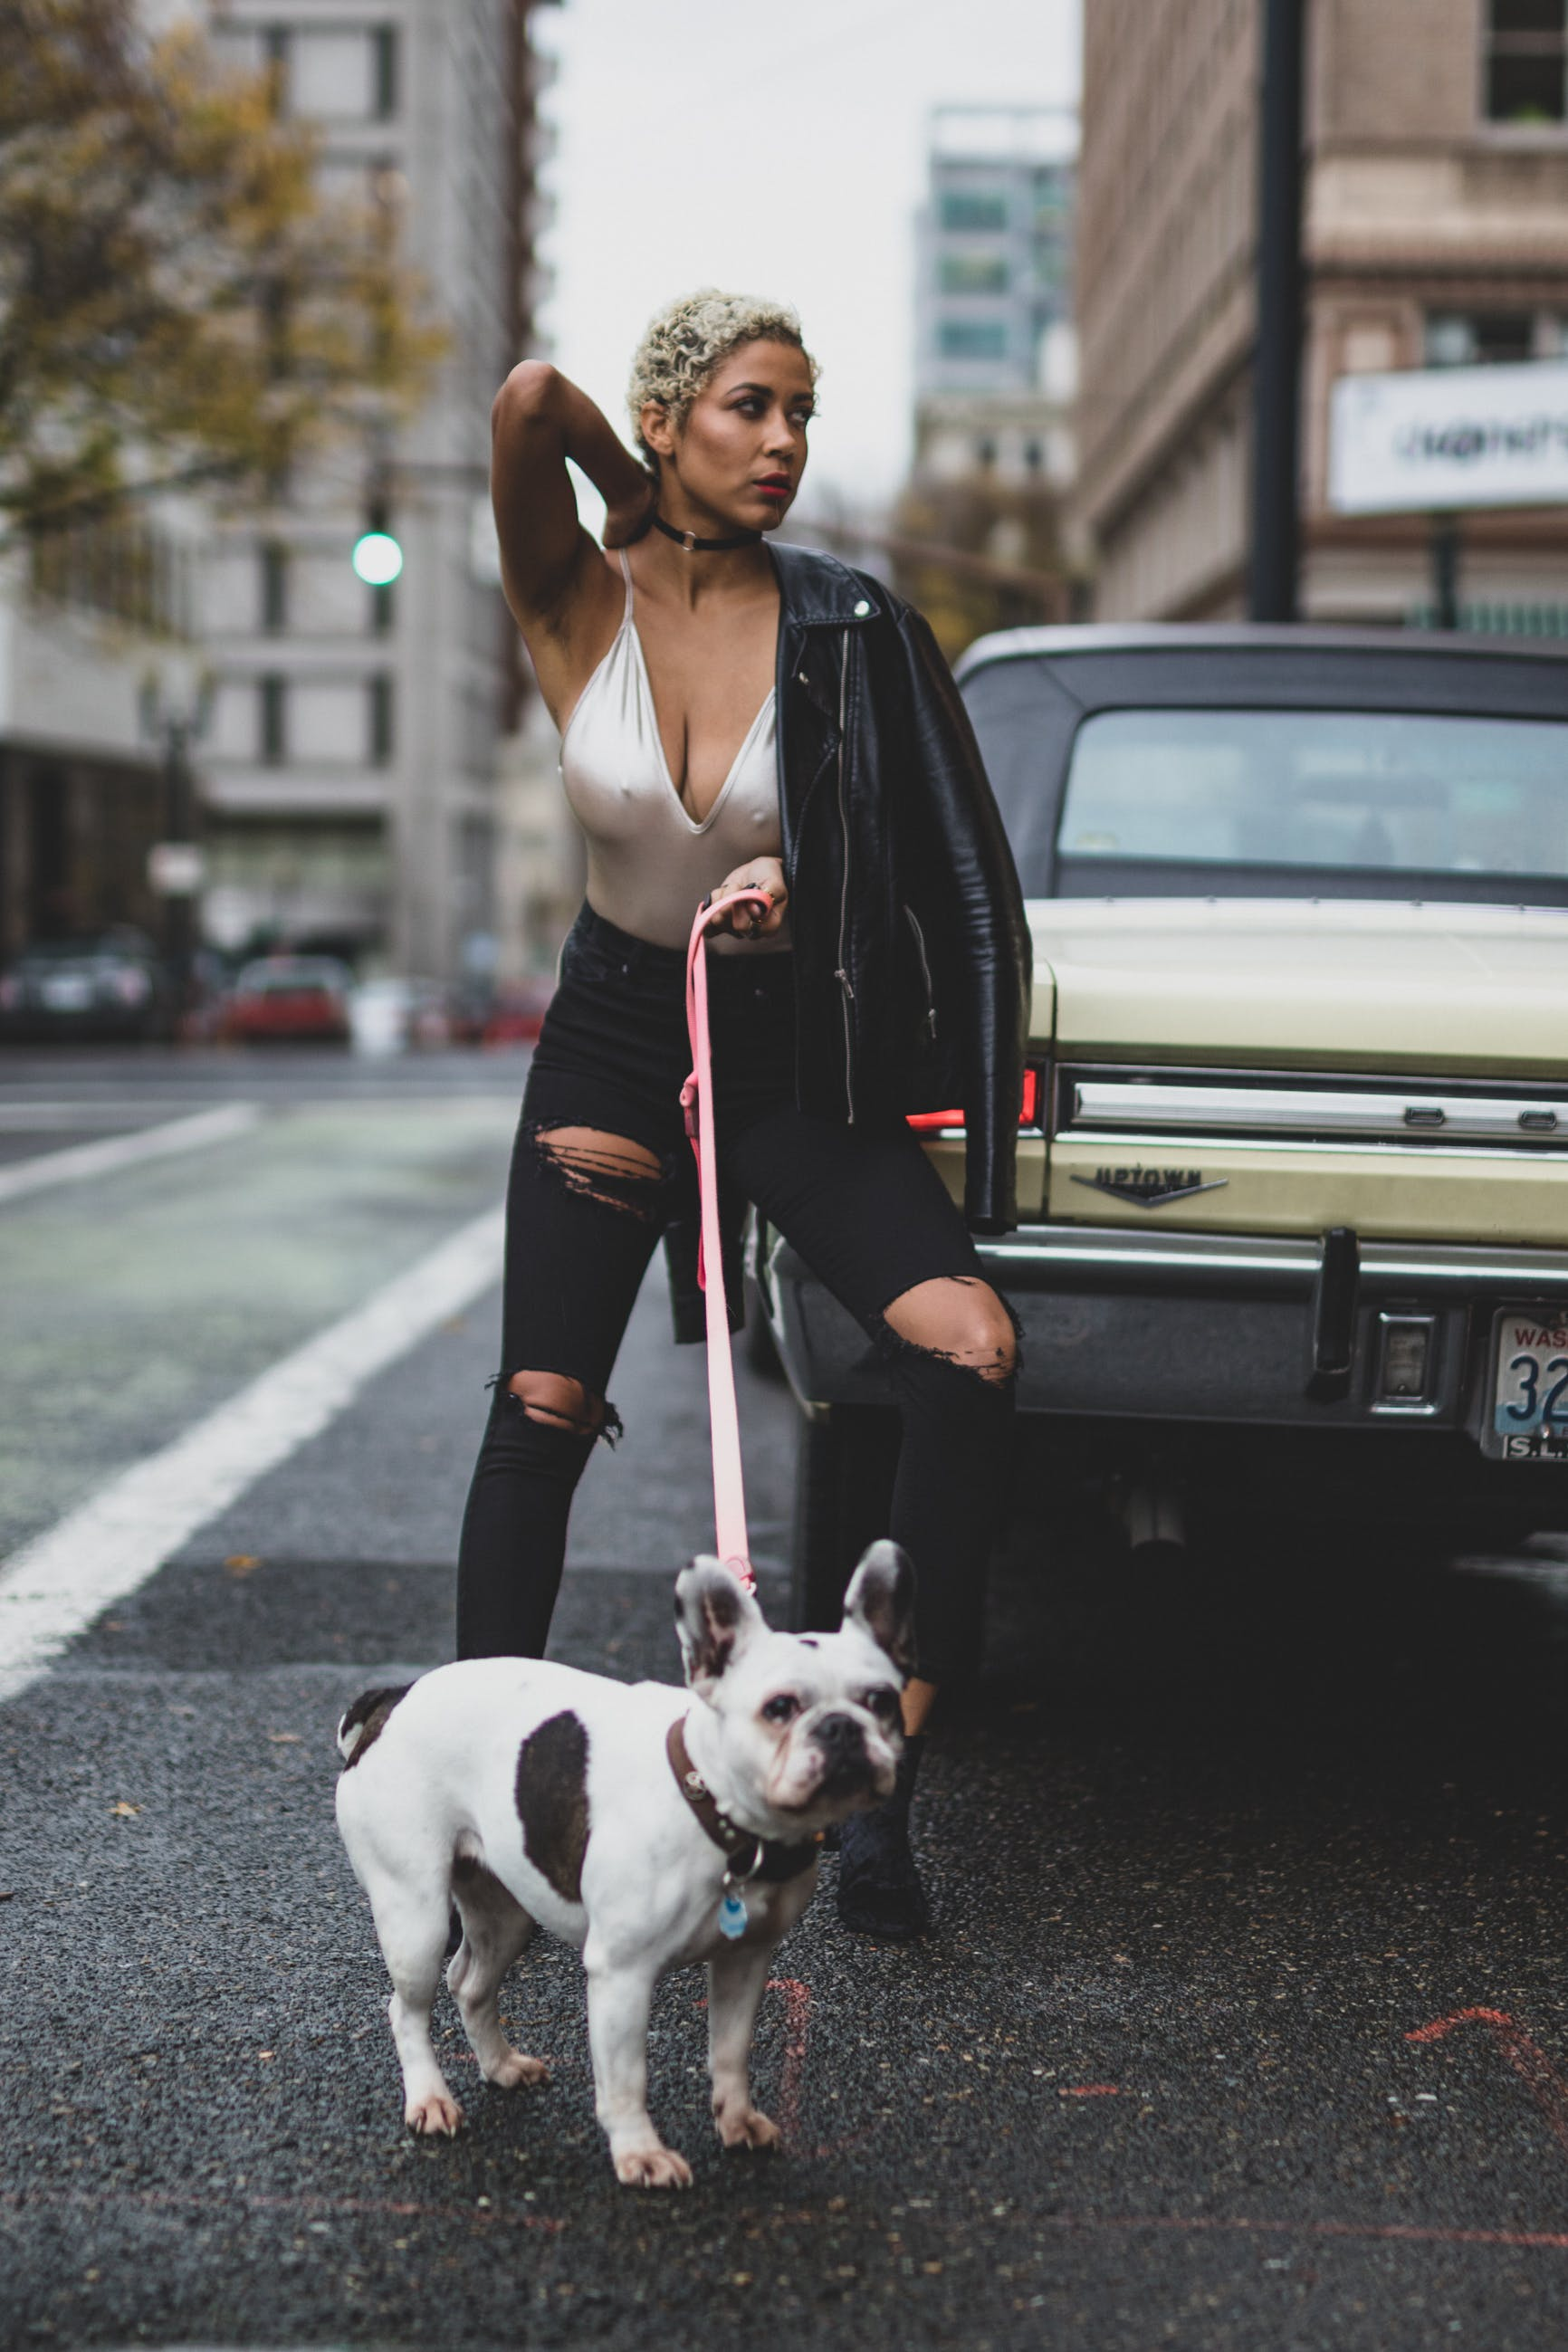 Woman in White Top and Black Leather Jacket Holding Dog With Leash